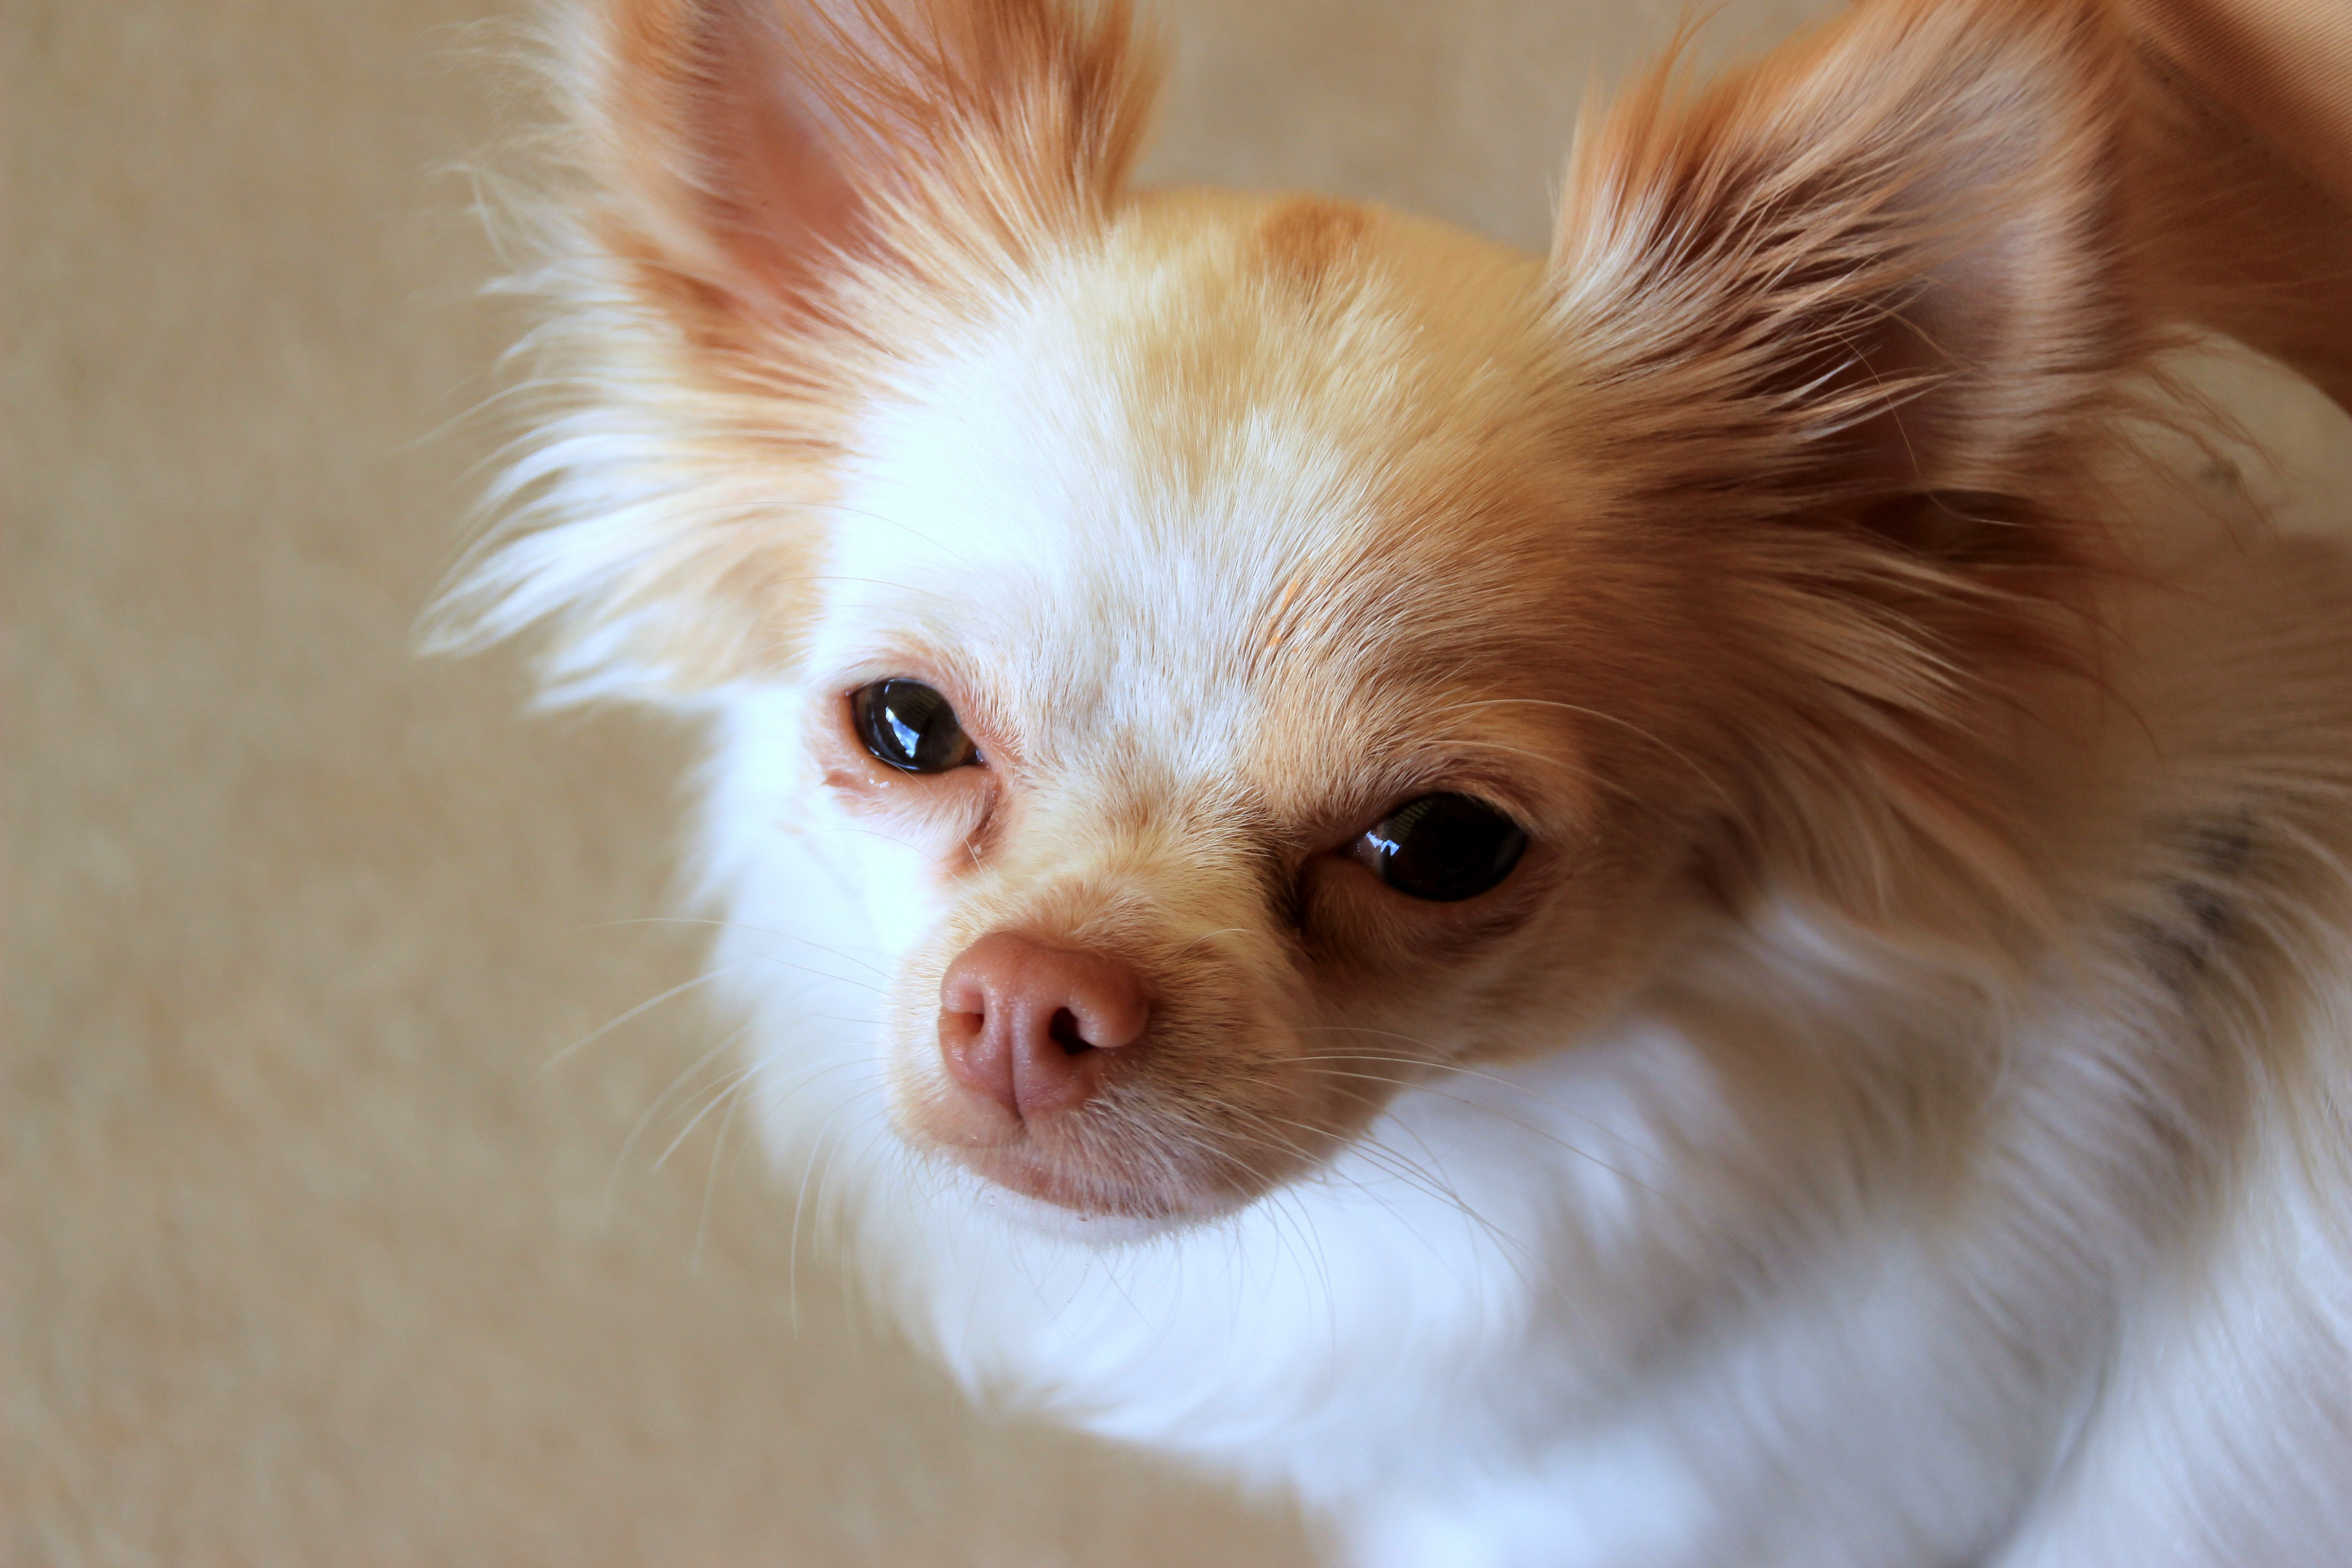 Chihuahua closeup photo